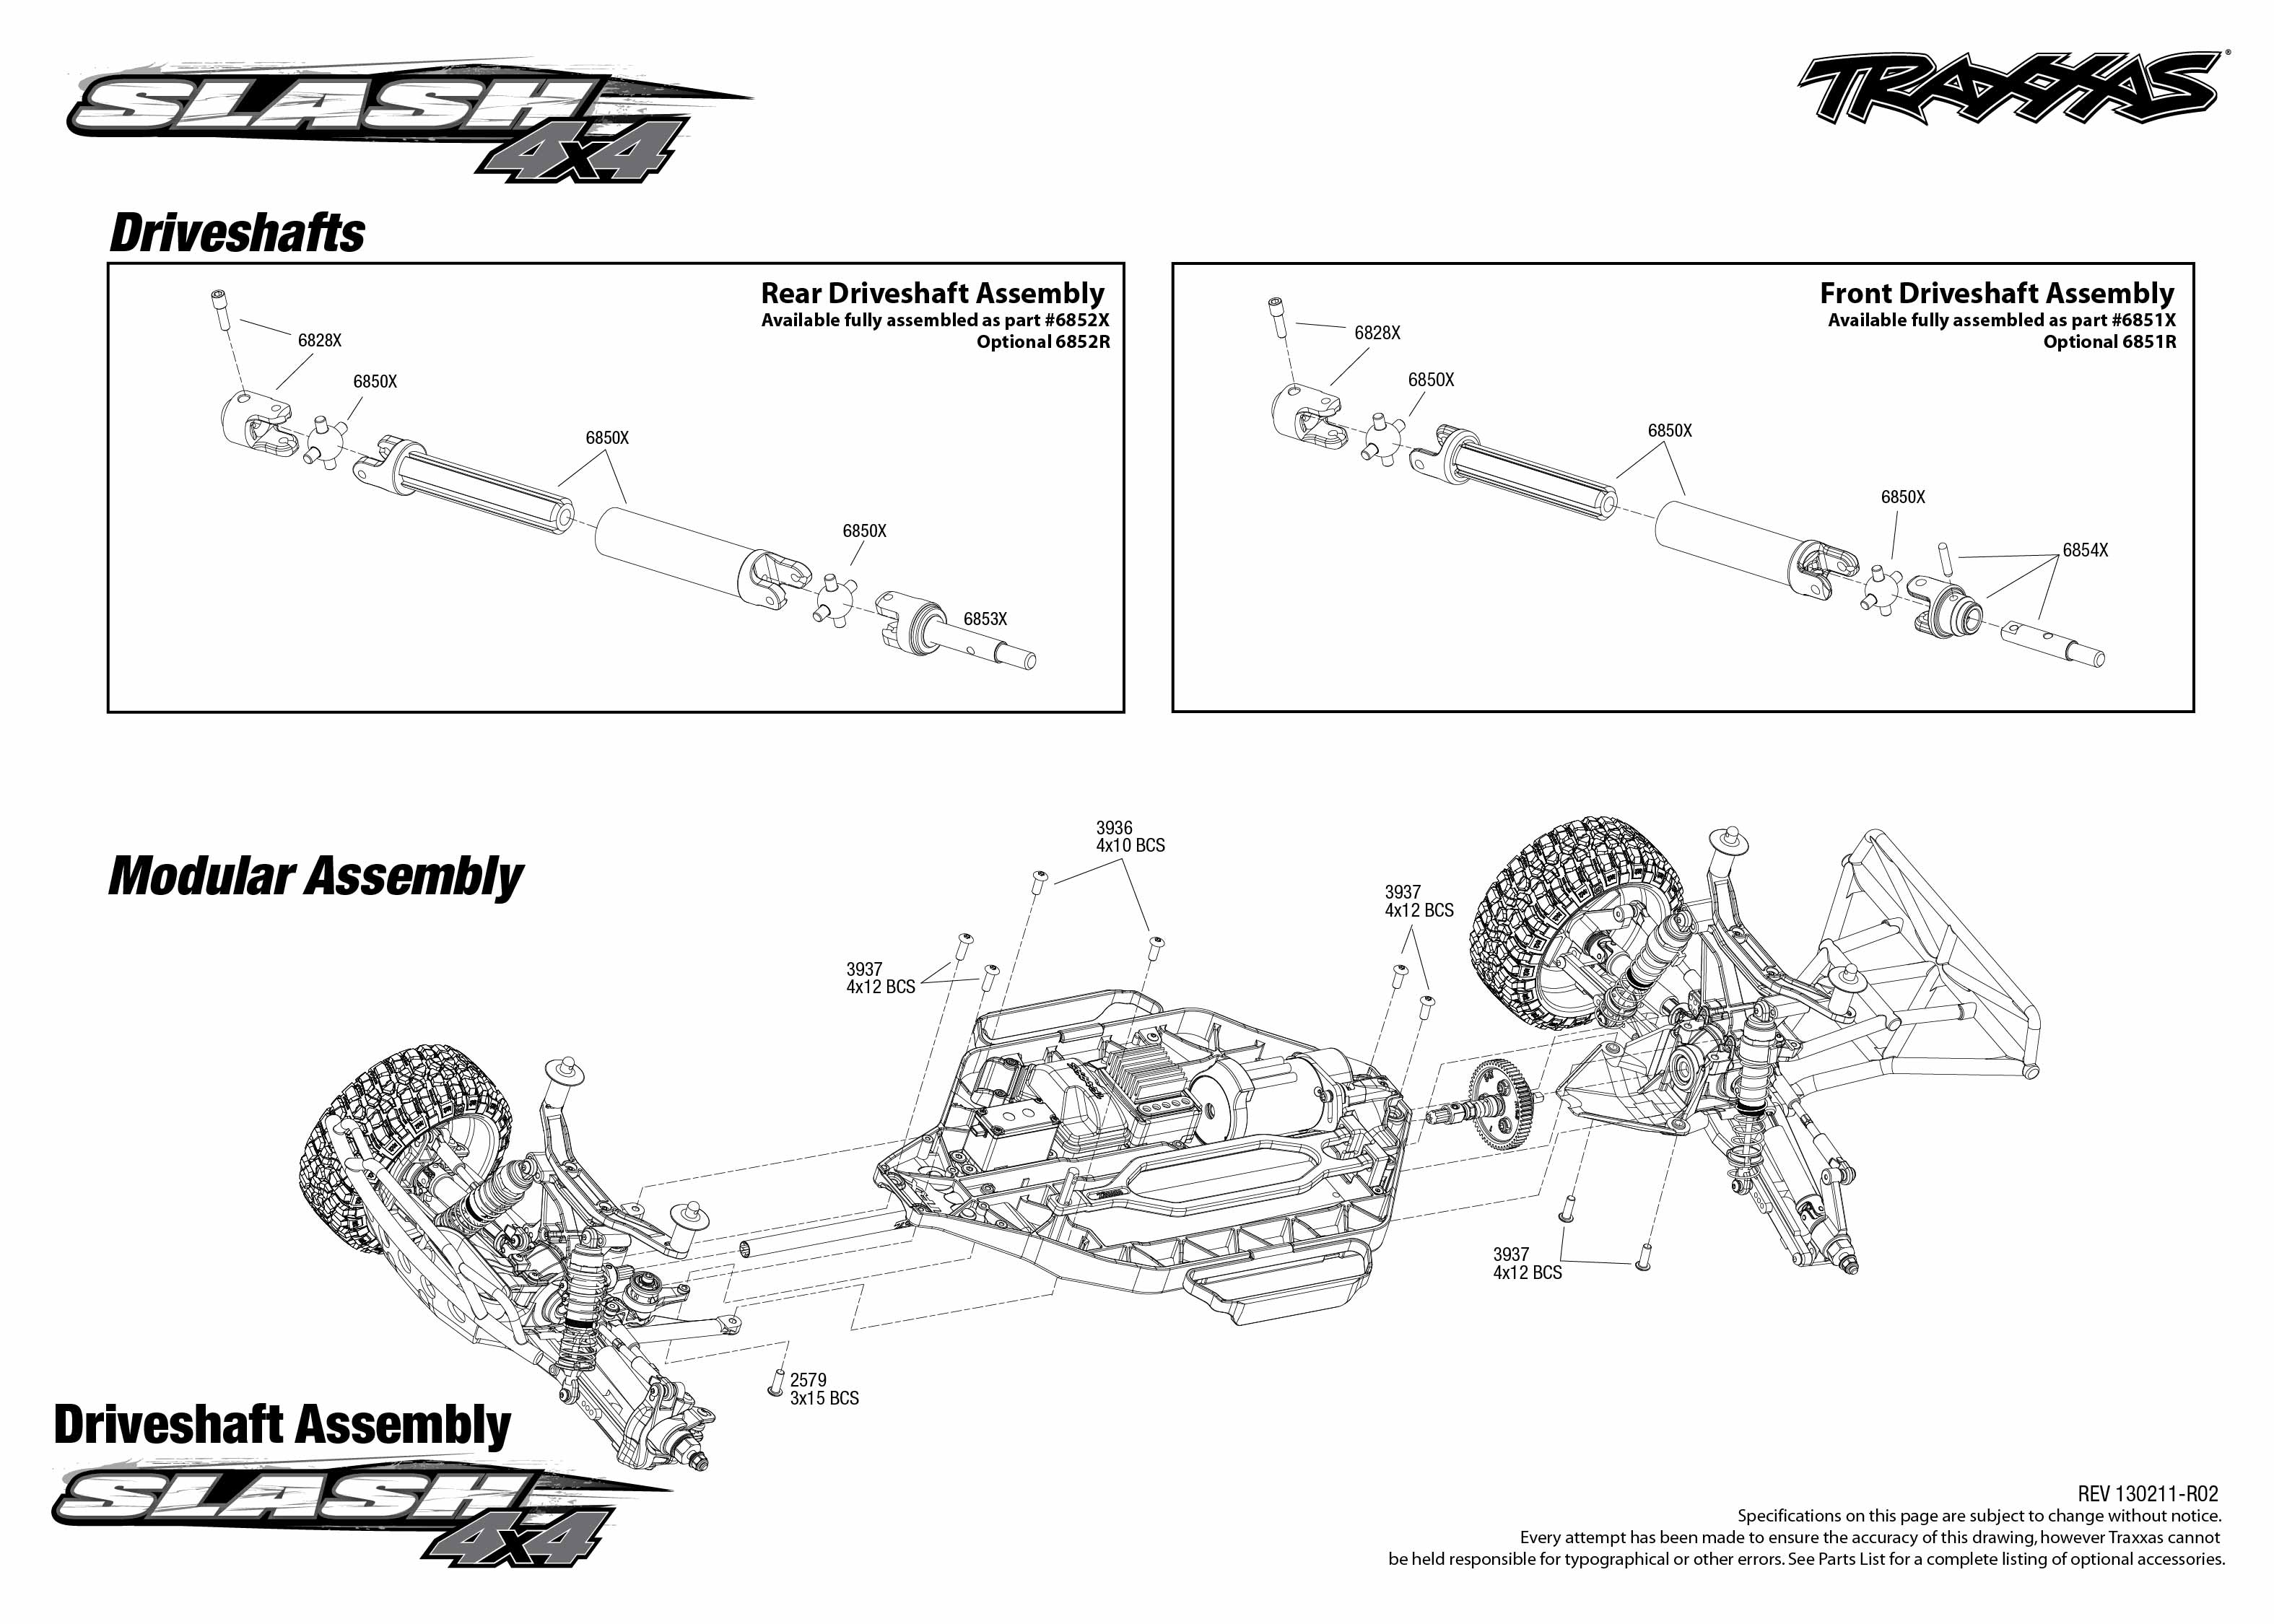 traxxas 1 10 scale slash 4x4 brushless short course truck 6808l 6808 driveshafts exploded view slash 4x4 tqi 2 4ghz radio